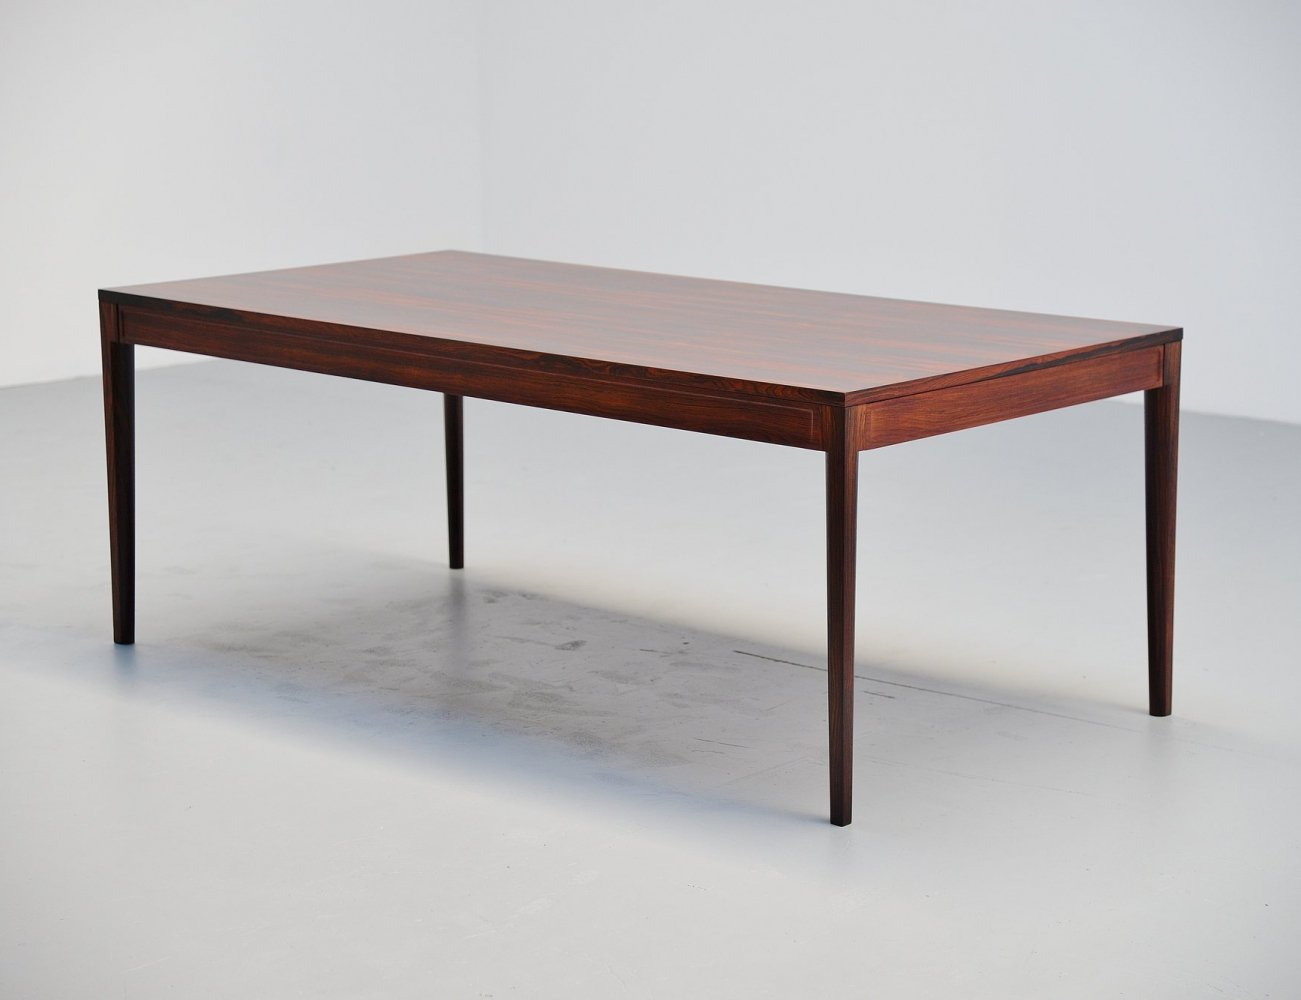 Finn Juhl diplomat dining table by France & Son, Denmark 1962